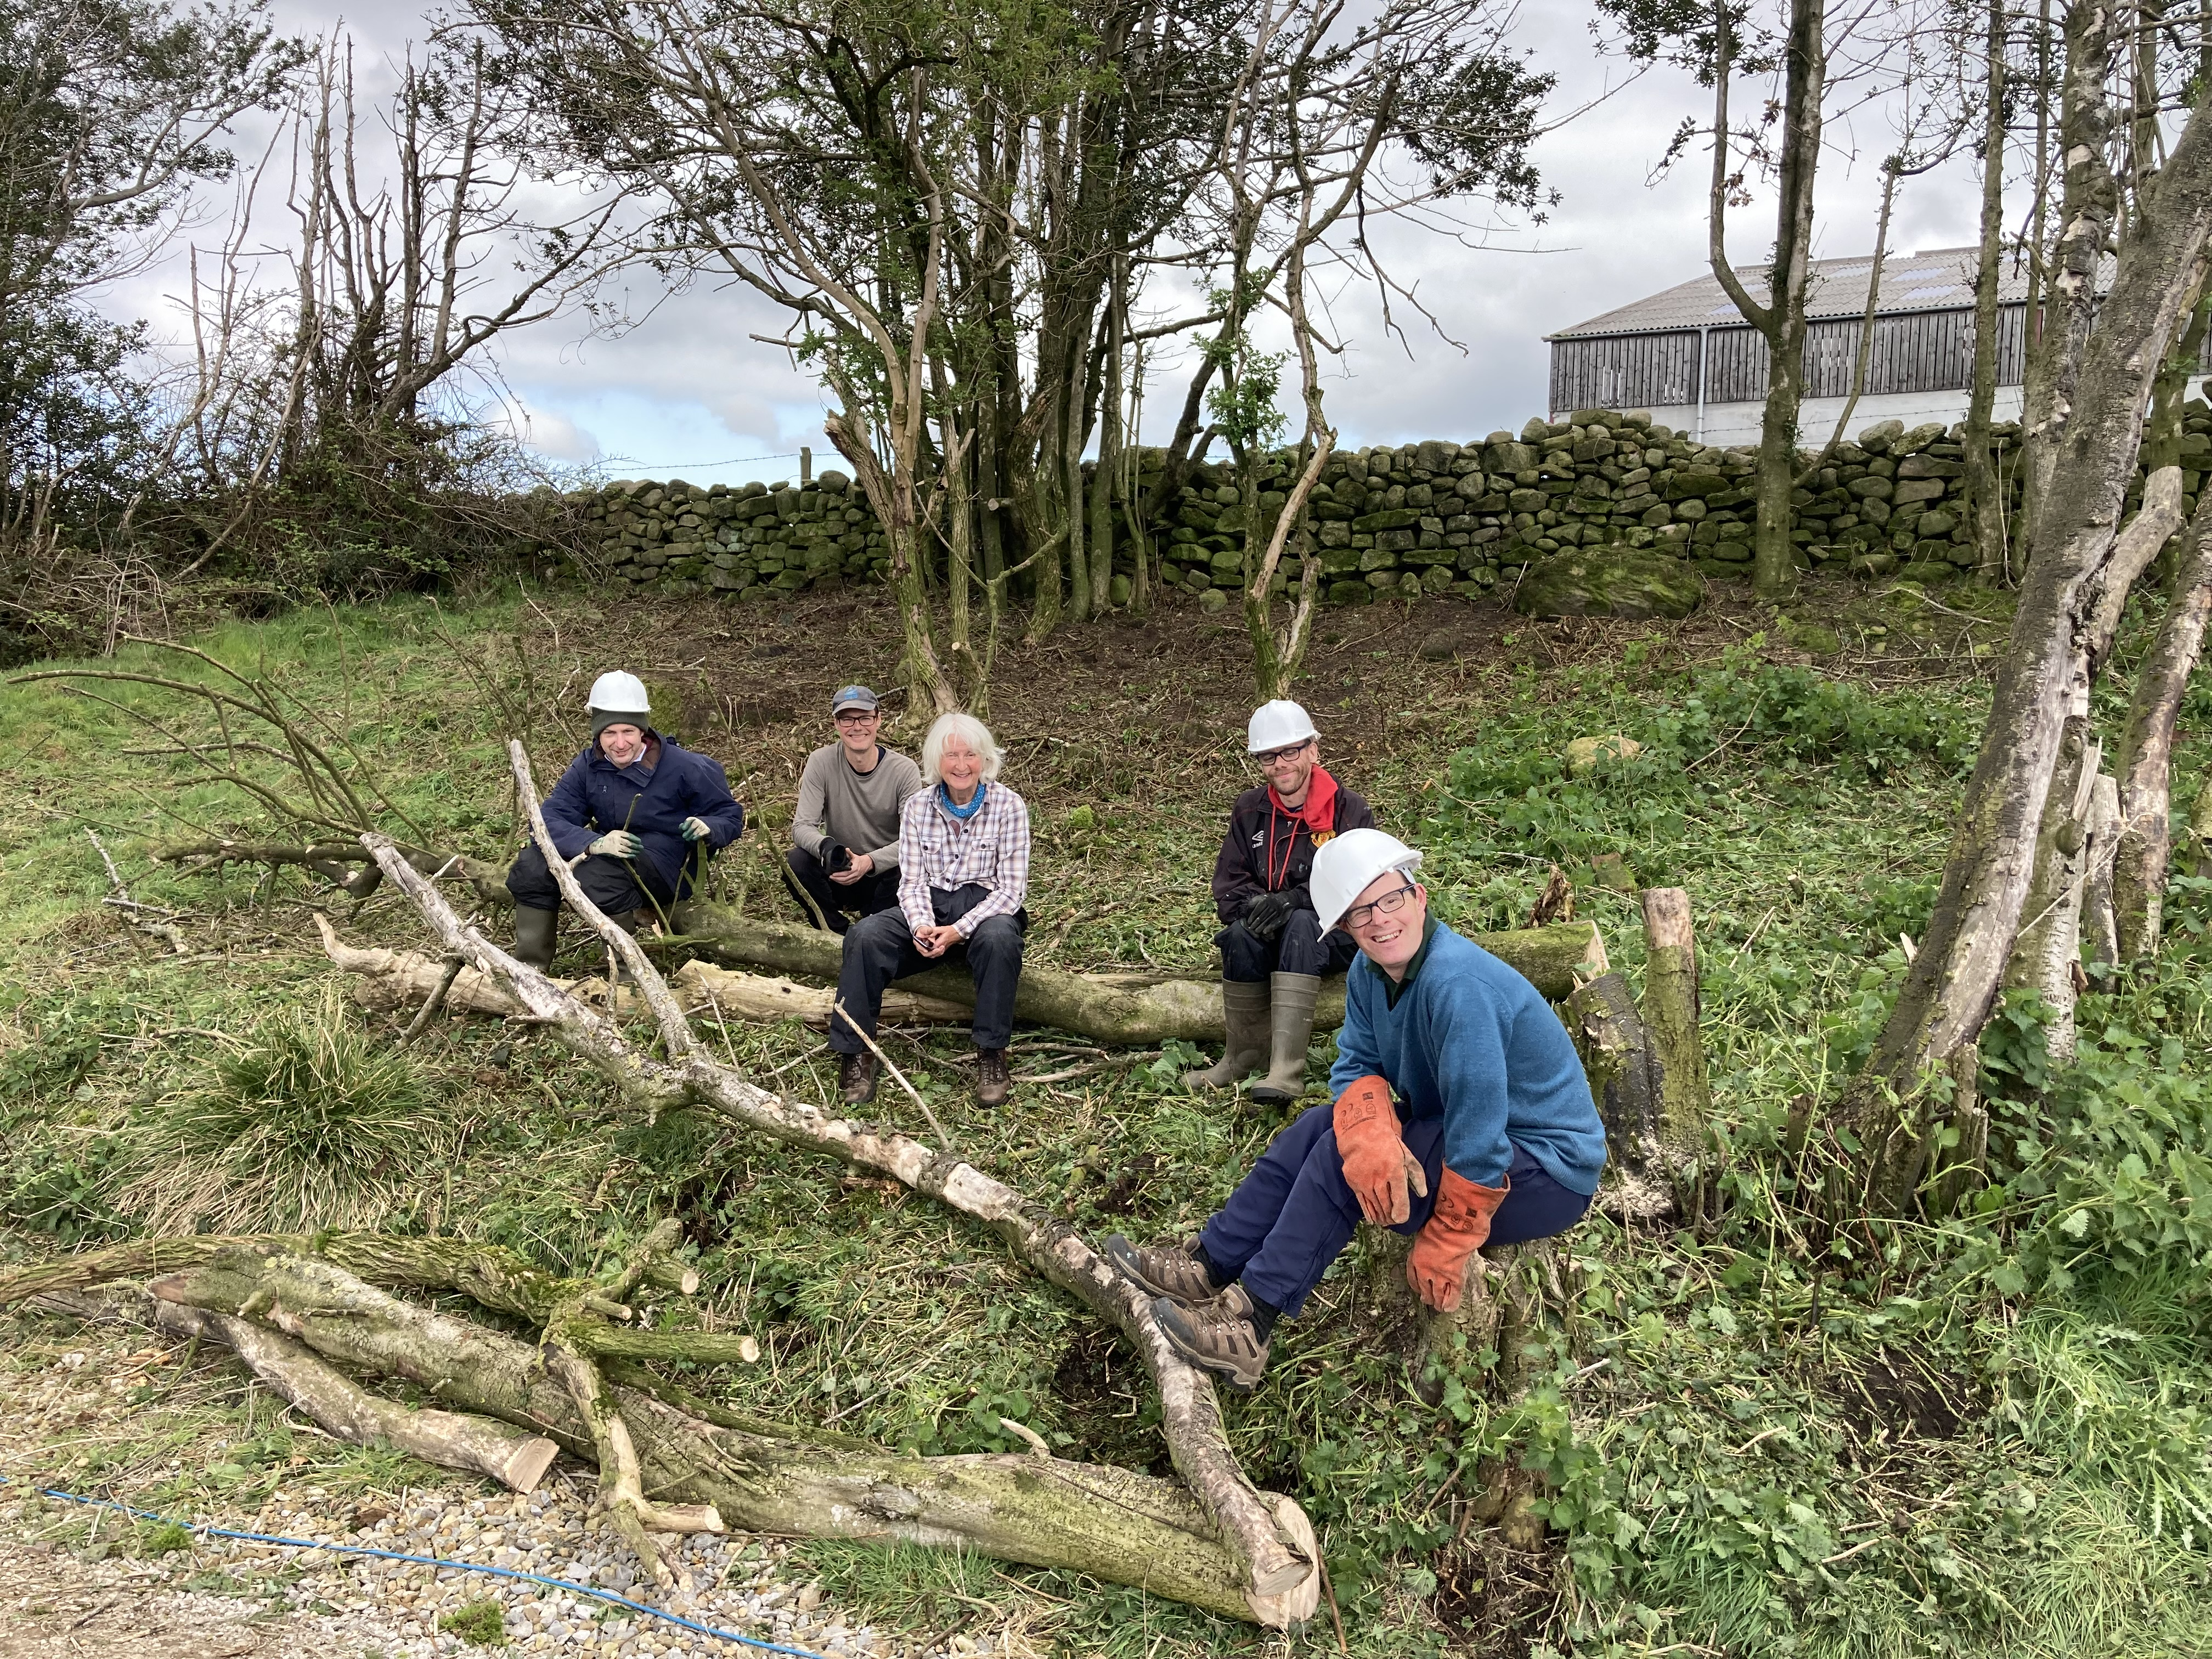 The conservation group having a rest after felling some trees.